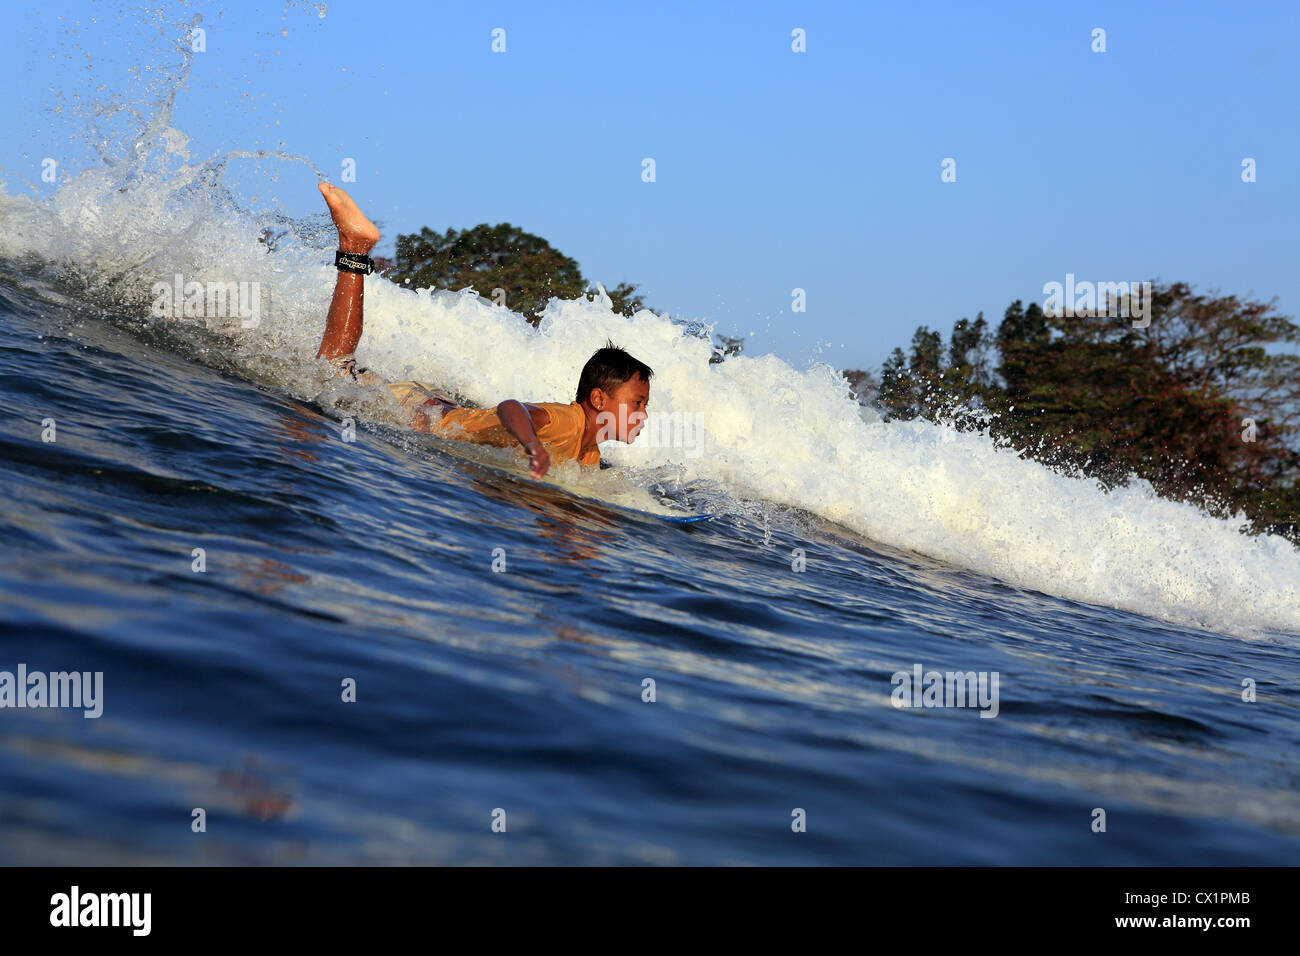 Young local boy surfing at Batu Karas in West Java, Indonesia. - Stock Image